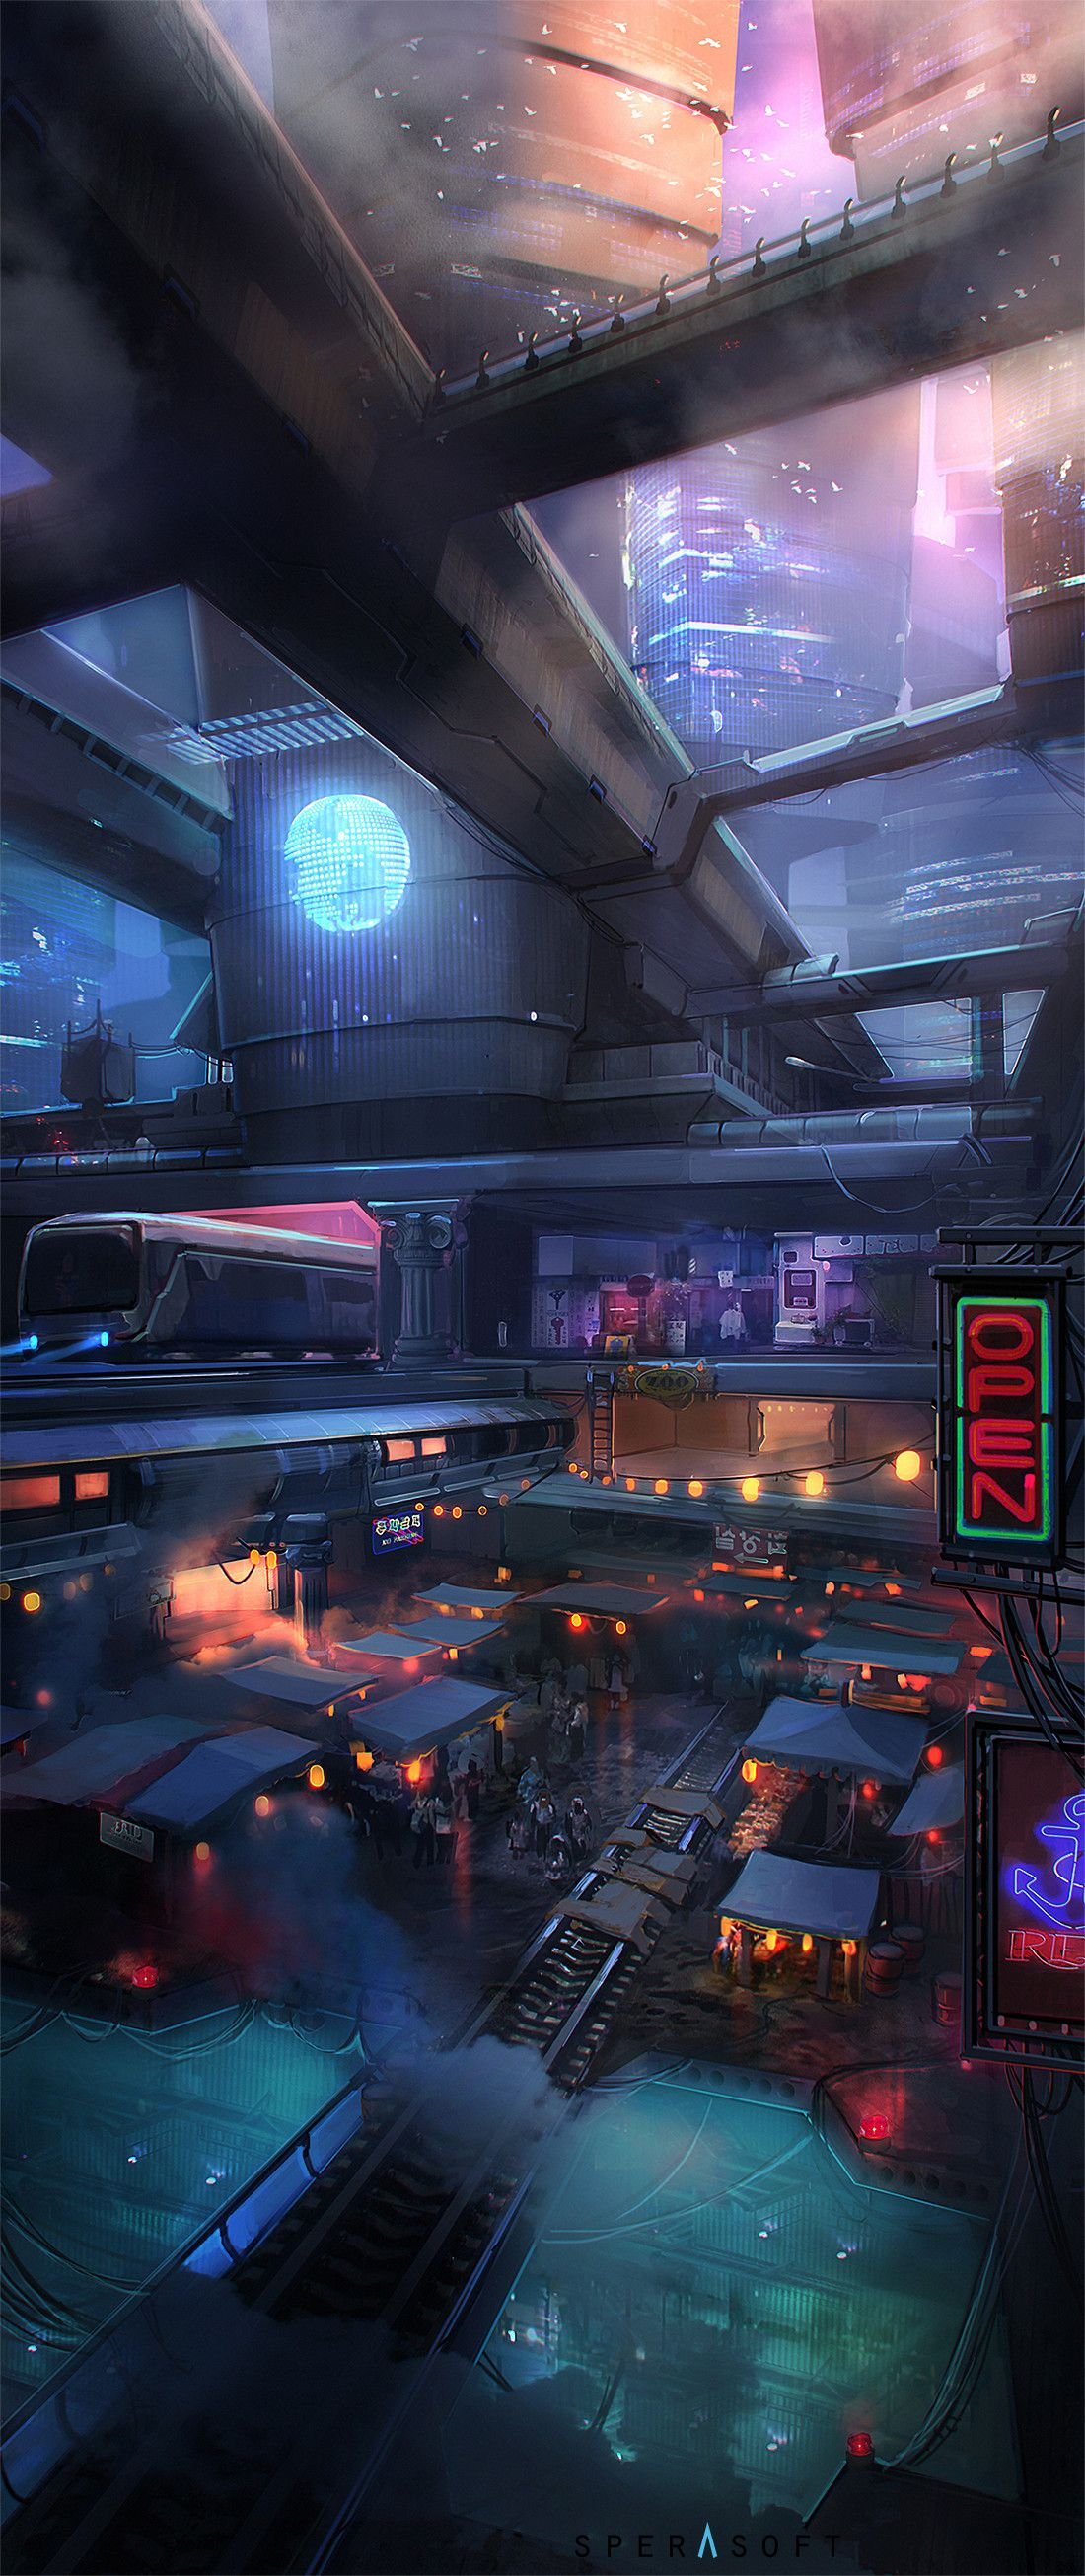 ArtStation - Cyberpunk environment, Sperasoft Studio